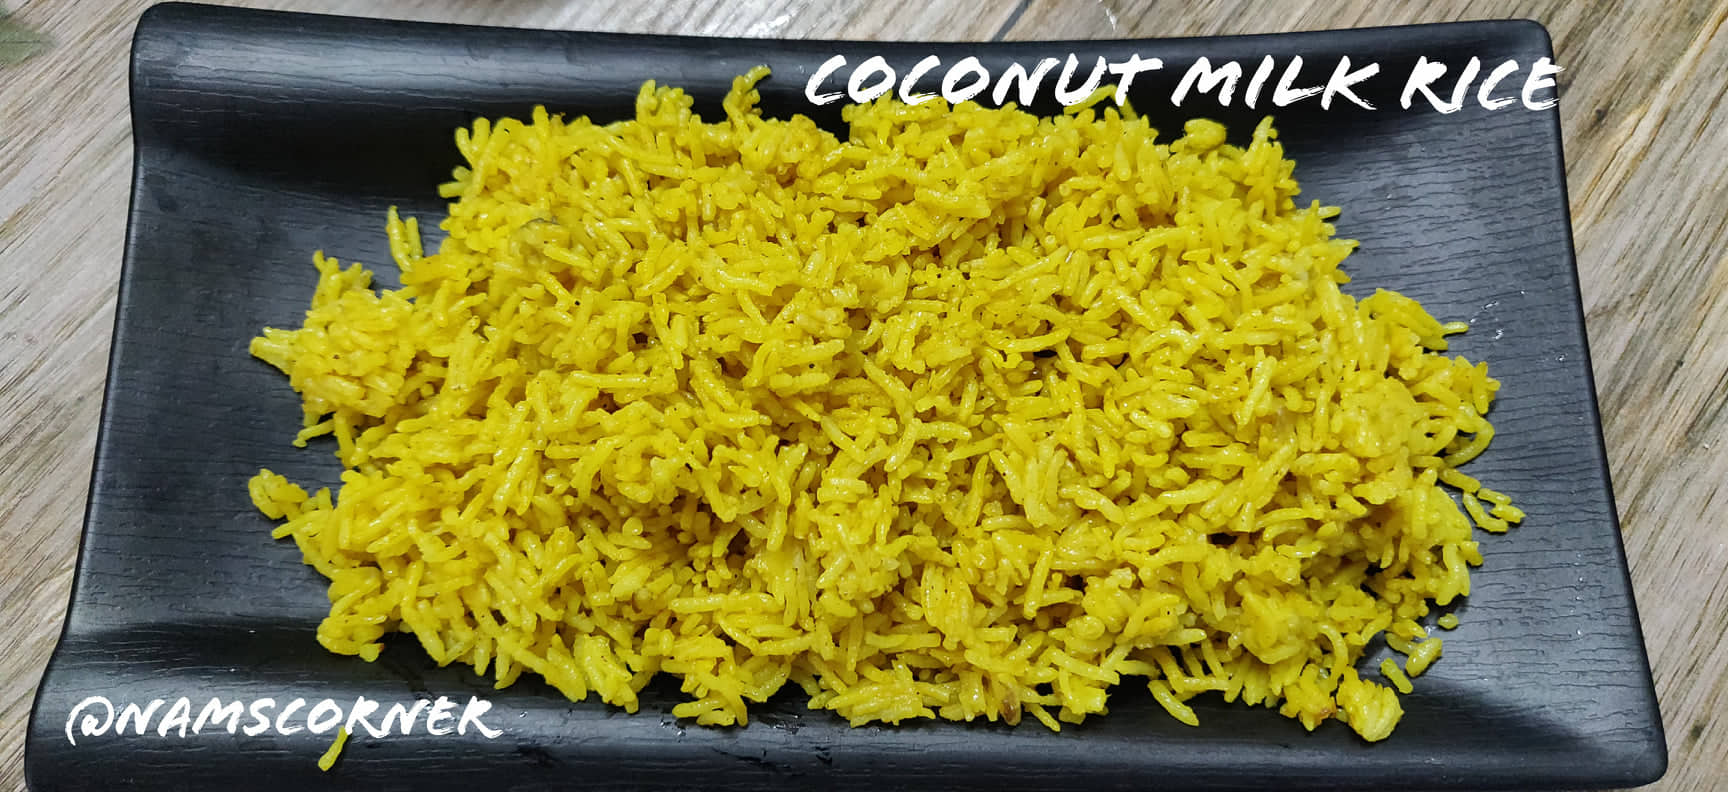 Coconut Milk Rice Recipe | Thengai Paal Sadam | Srilankan Yellow rice